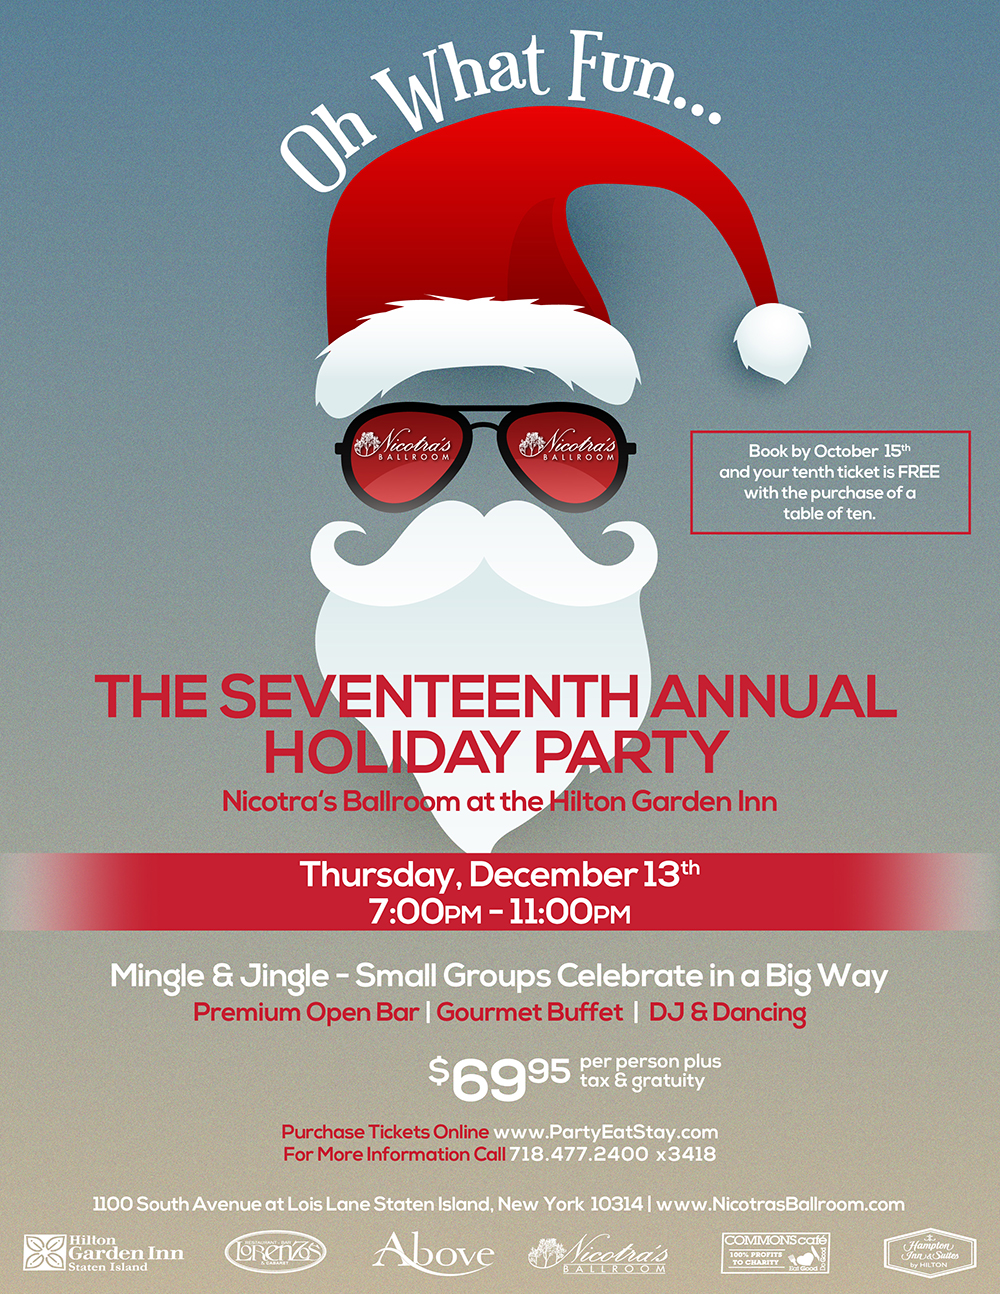 The Seventeenth Annual Holiday Party at Nicotra's Ballroom